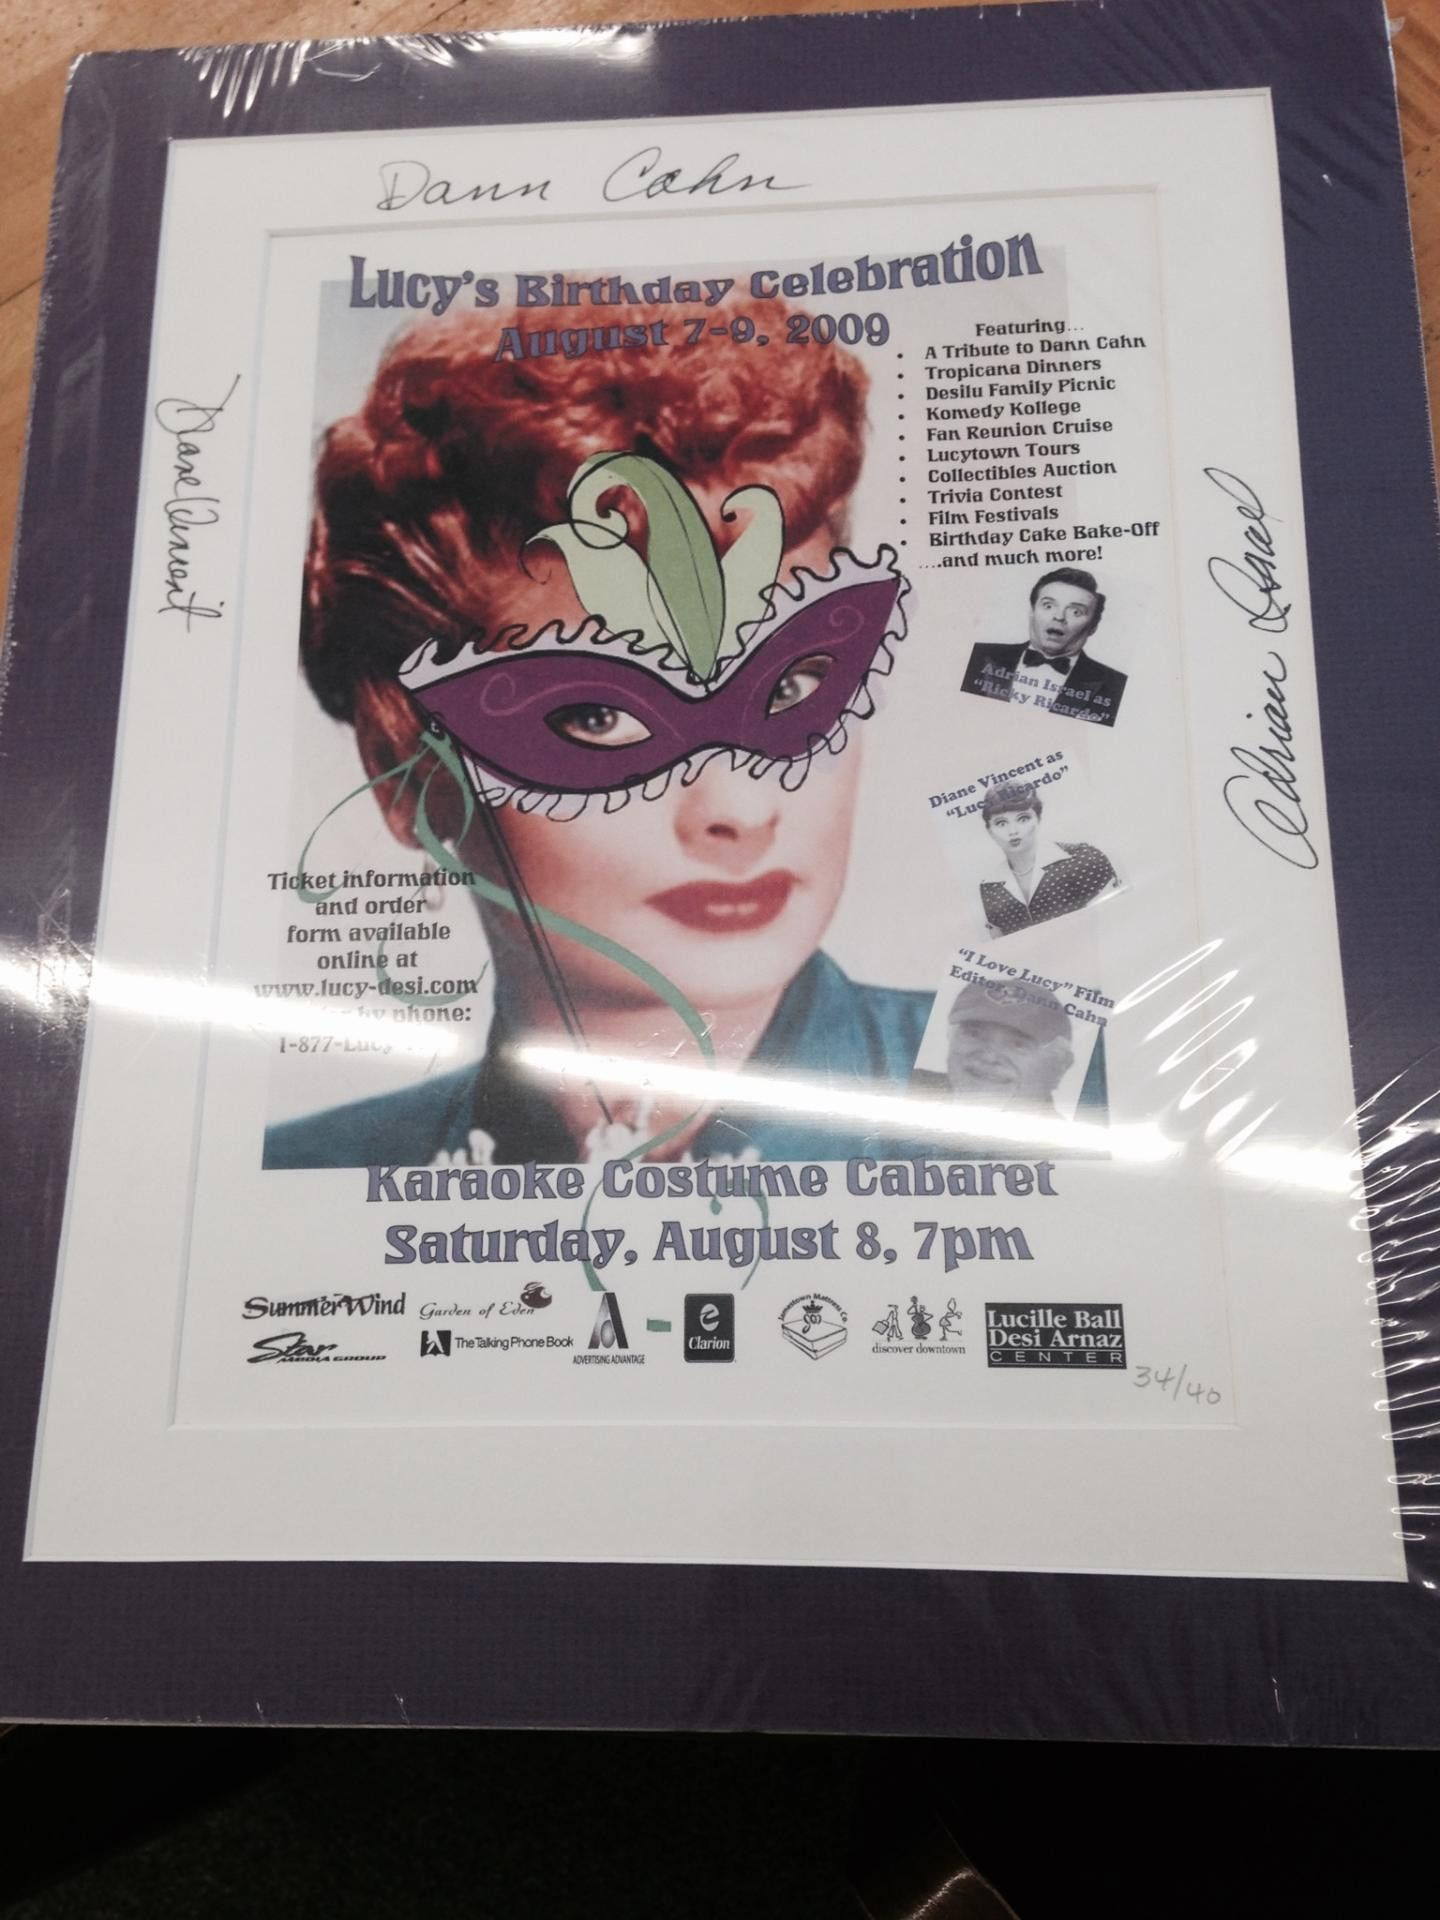 Aug u signed festival poster festival posters and products